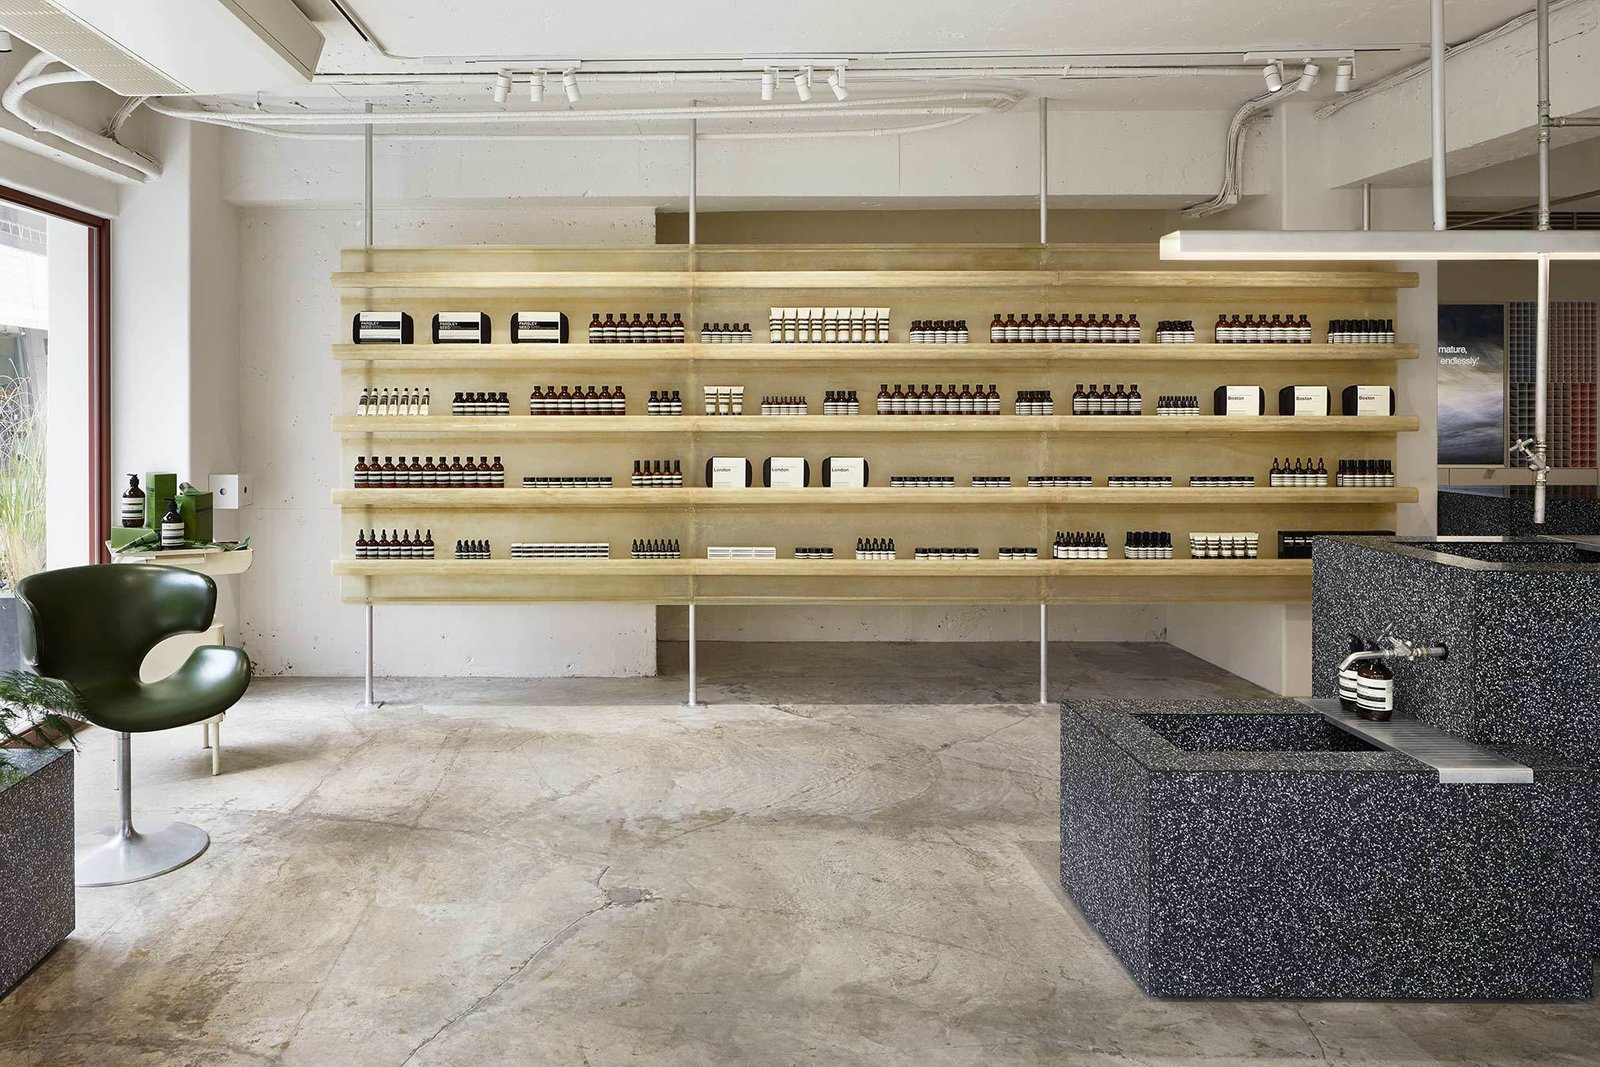 Aesop Jiyugaoka is a minimalist Aesop store located in Tokyo, Japan, designed by ciguë. The space features a raw aesthetic, comprised mainly of concrete and the use of fiberglass laminated resin mounted on vibrated aluminum for the product display shelves. The resin not only has an earthy appearance, but is also semi-transparent as well. The fiberglass can be produced with curved features, thus the shelves and the structure itself are softly curved. The checkout and sink counters are constructed in terrazzo.  Interiors